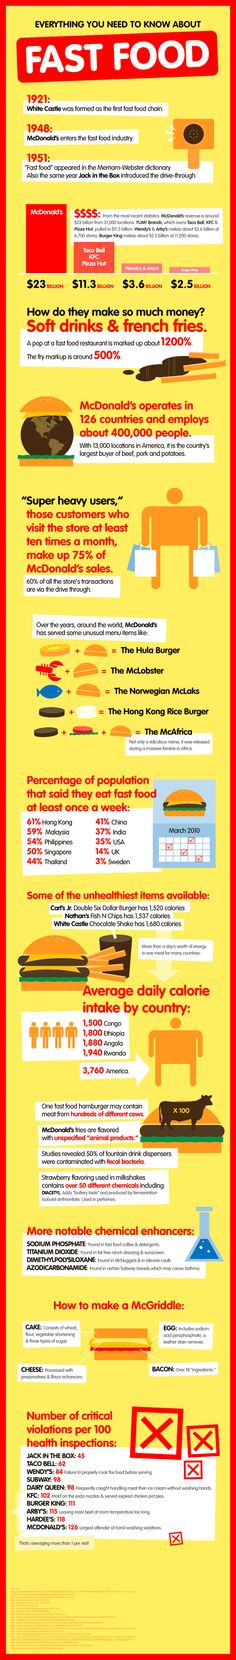 Everything You Need to Know About Fast Food (Image) why to avoid a Macy Ds!